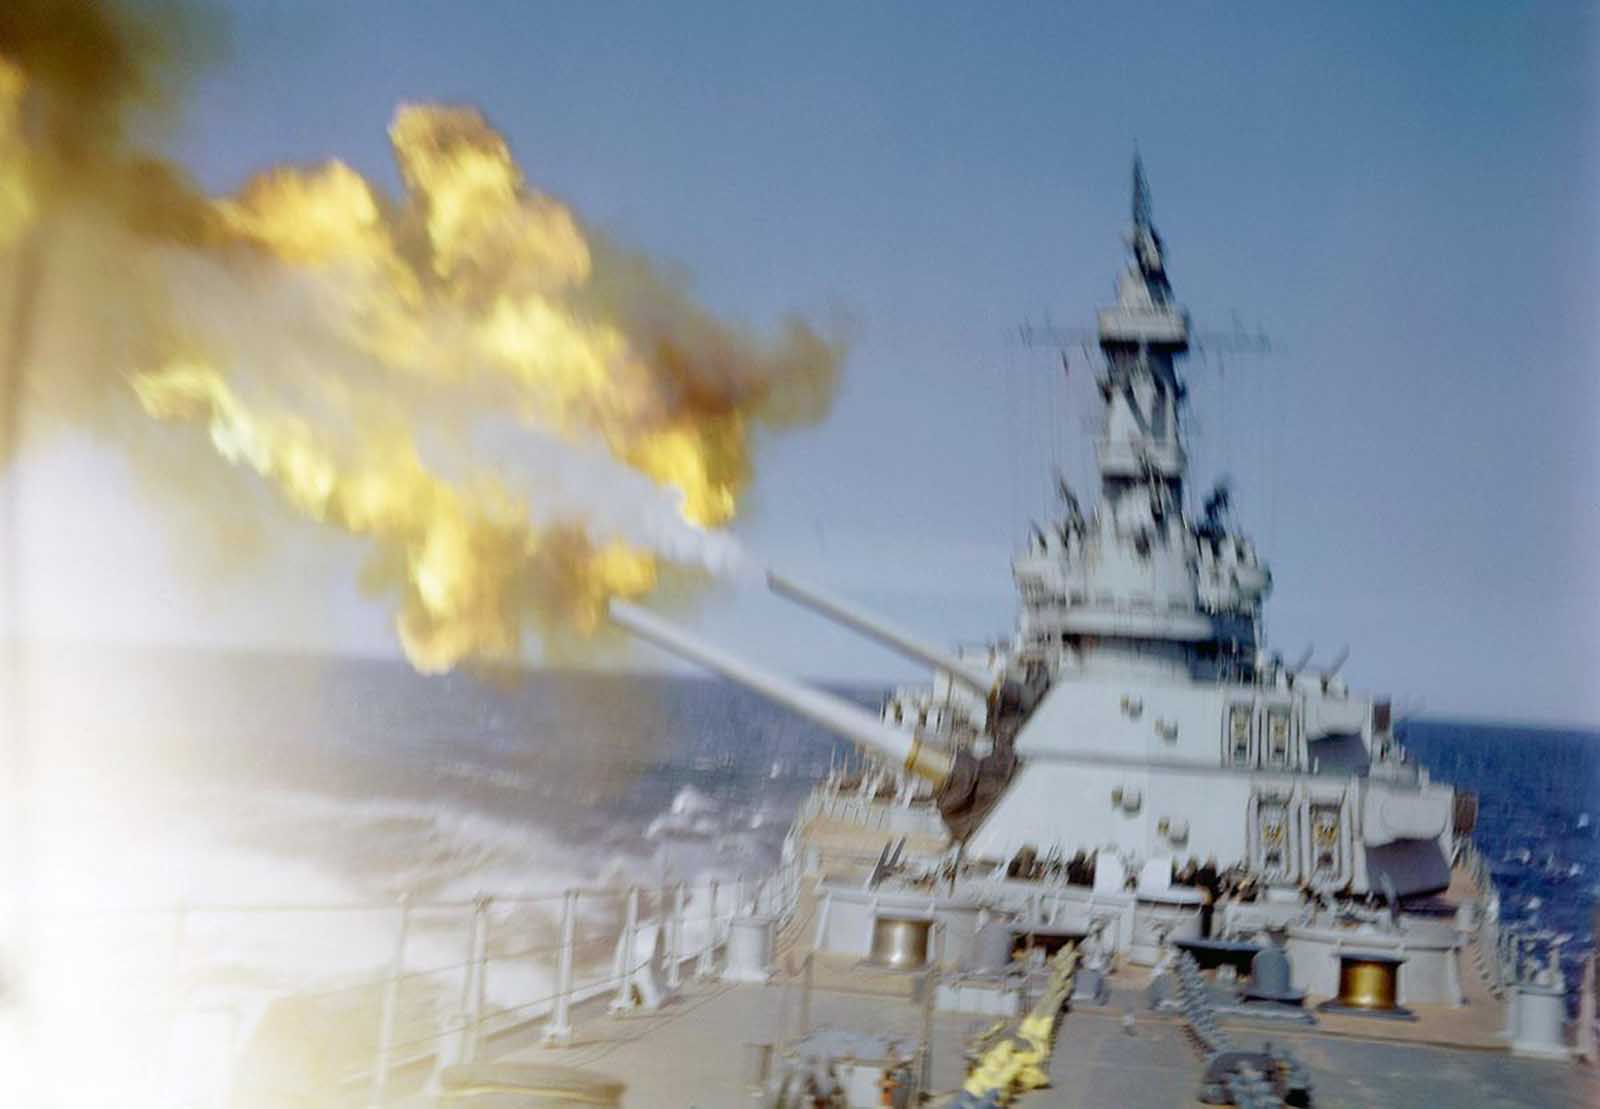 A U.S. cruiser fires her main batteries at Japanese positions on the southern tip of Okinawa, Japan in 1945.